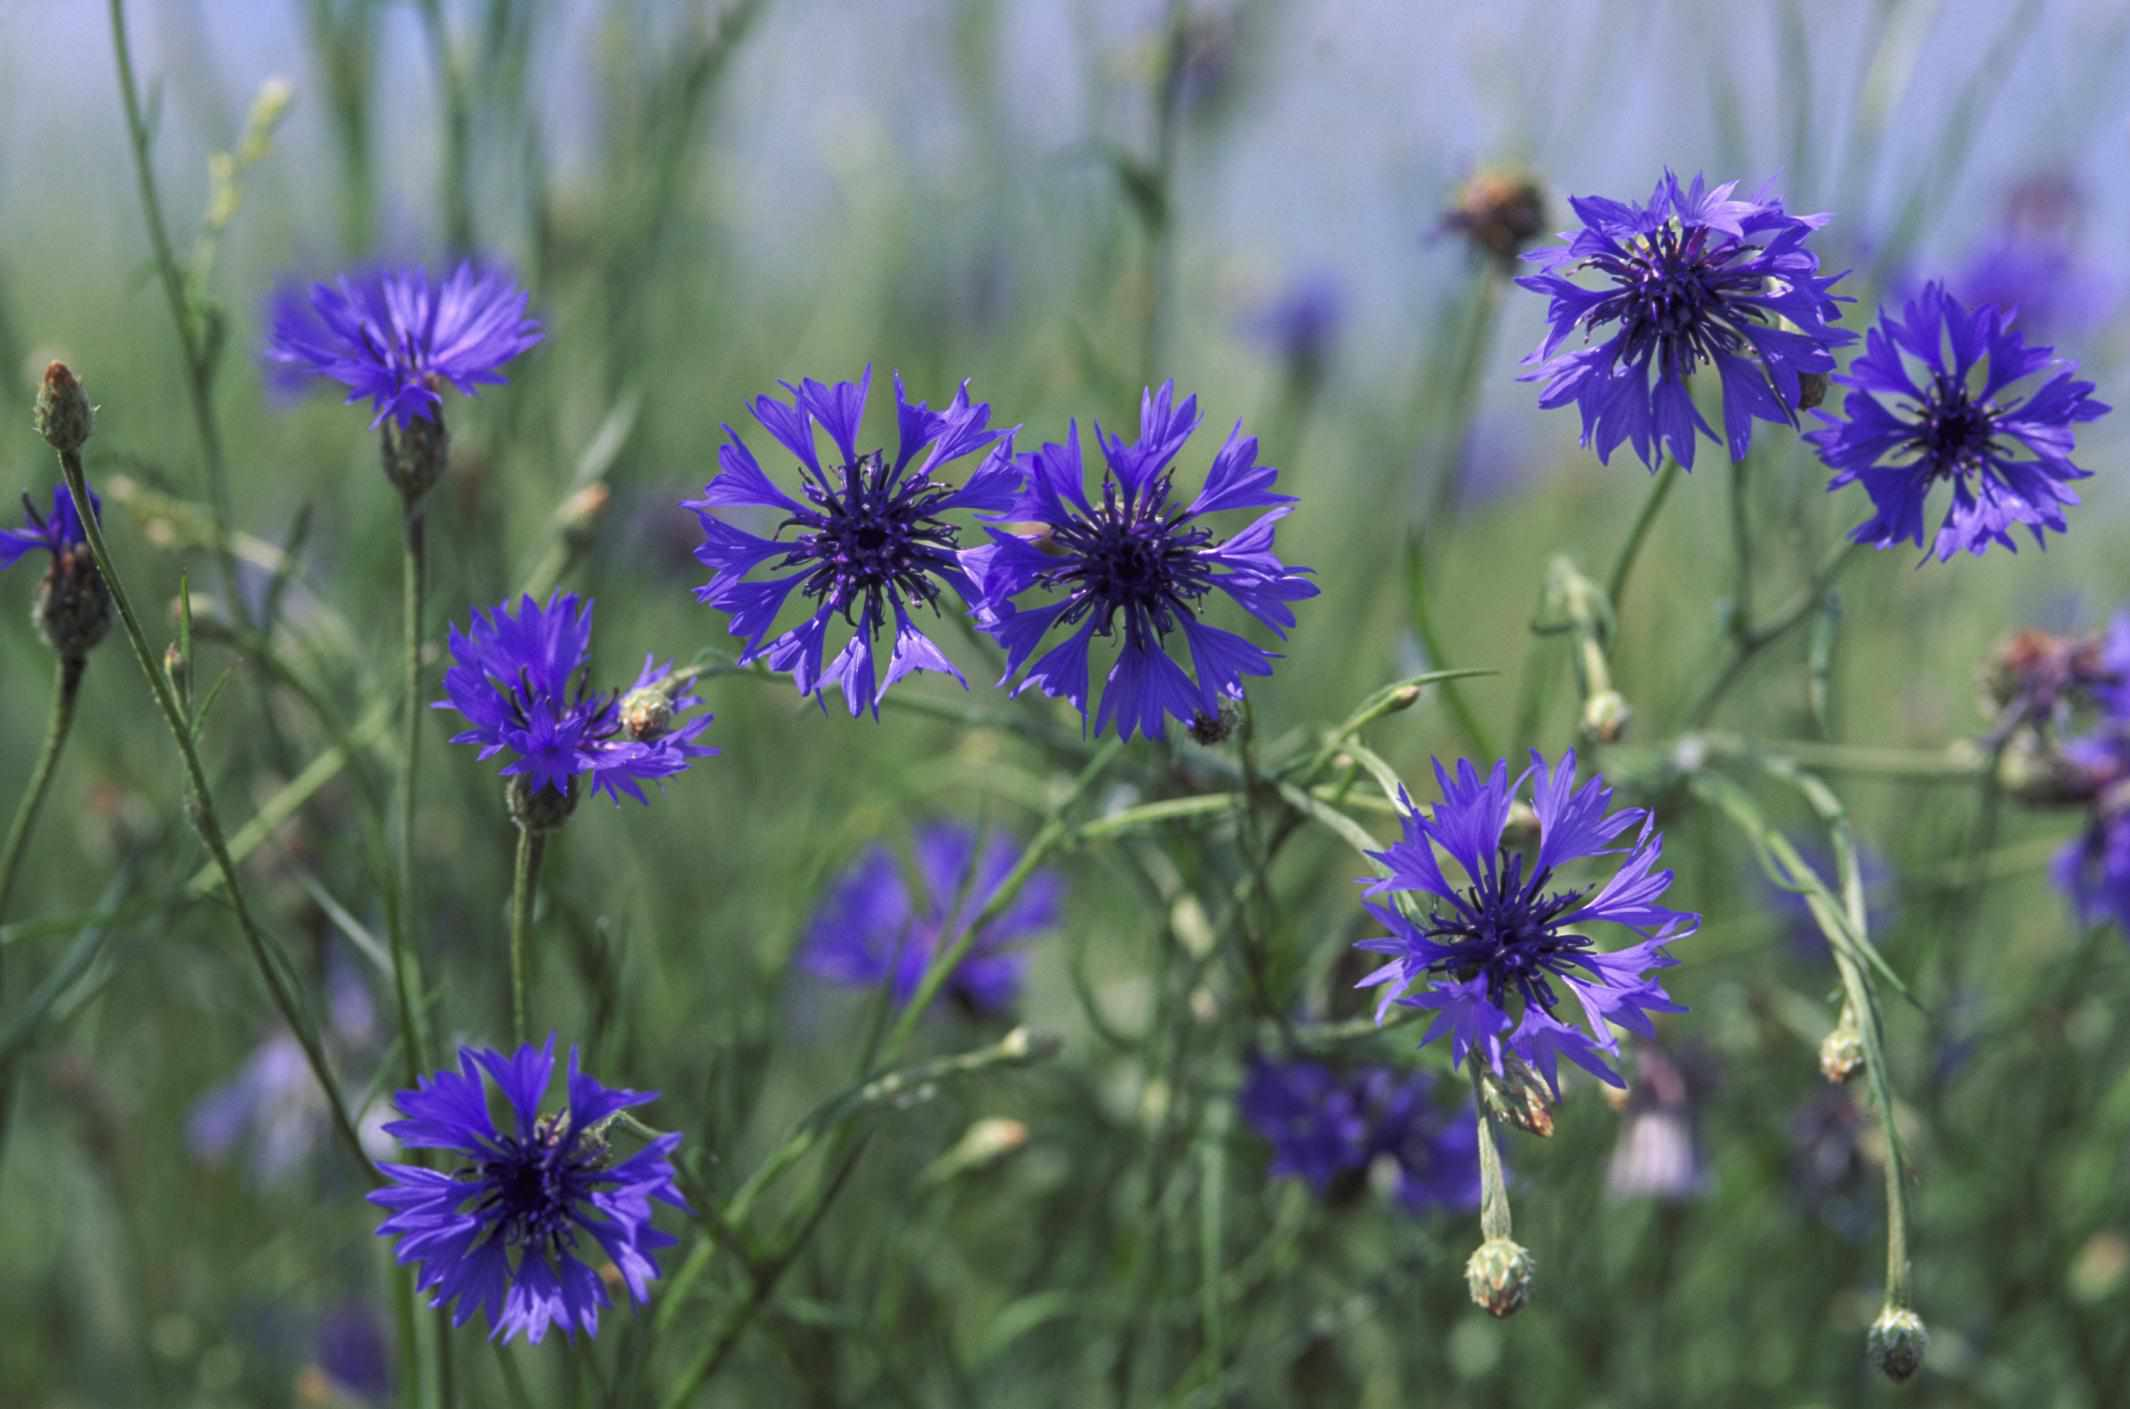 A closeup of a cluster of cornflower